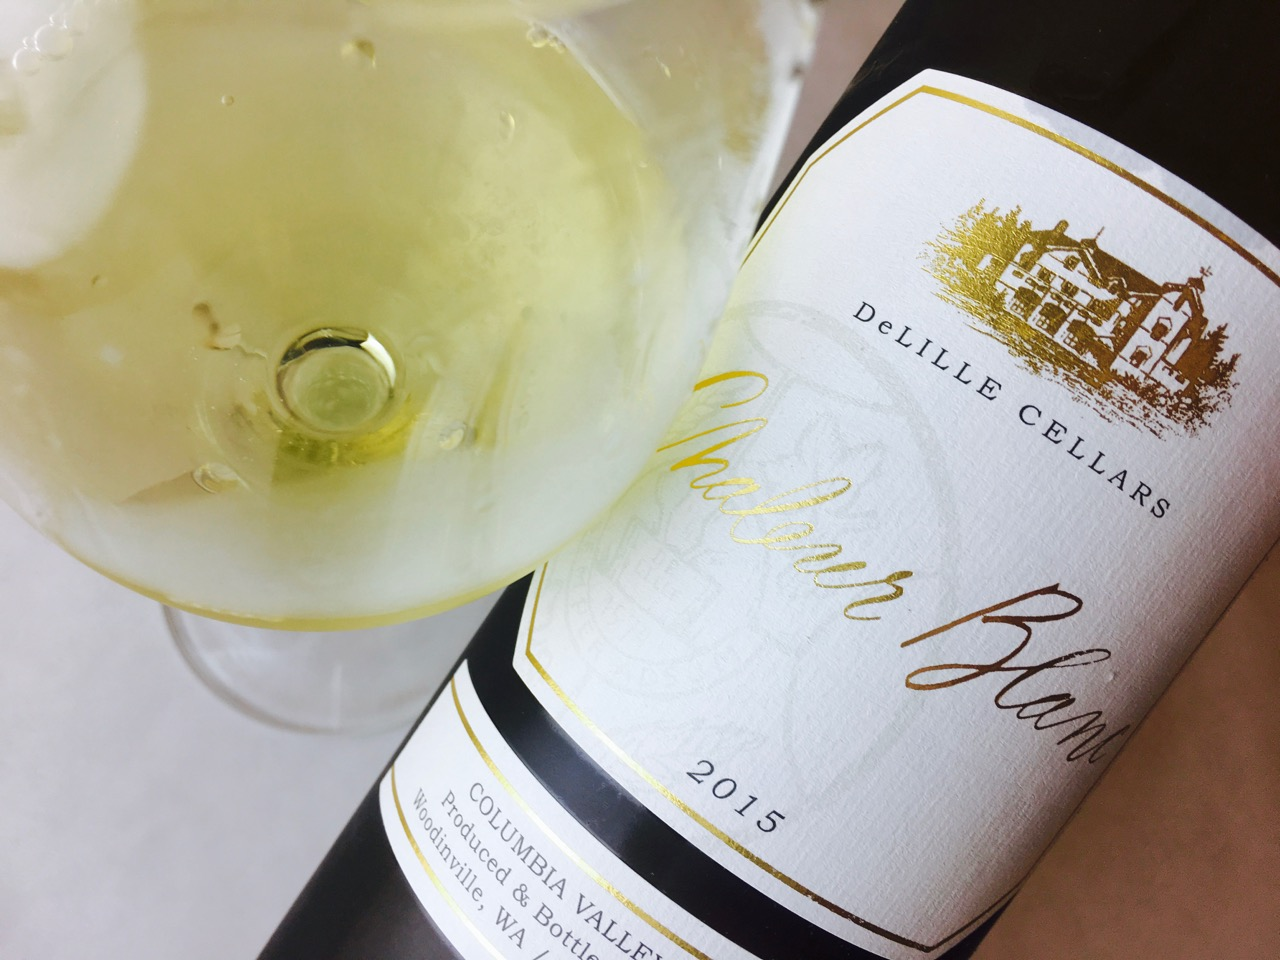 2015 DeLille Cellars White Blend Chaleur Blanc Columbia Valley